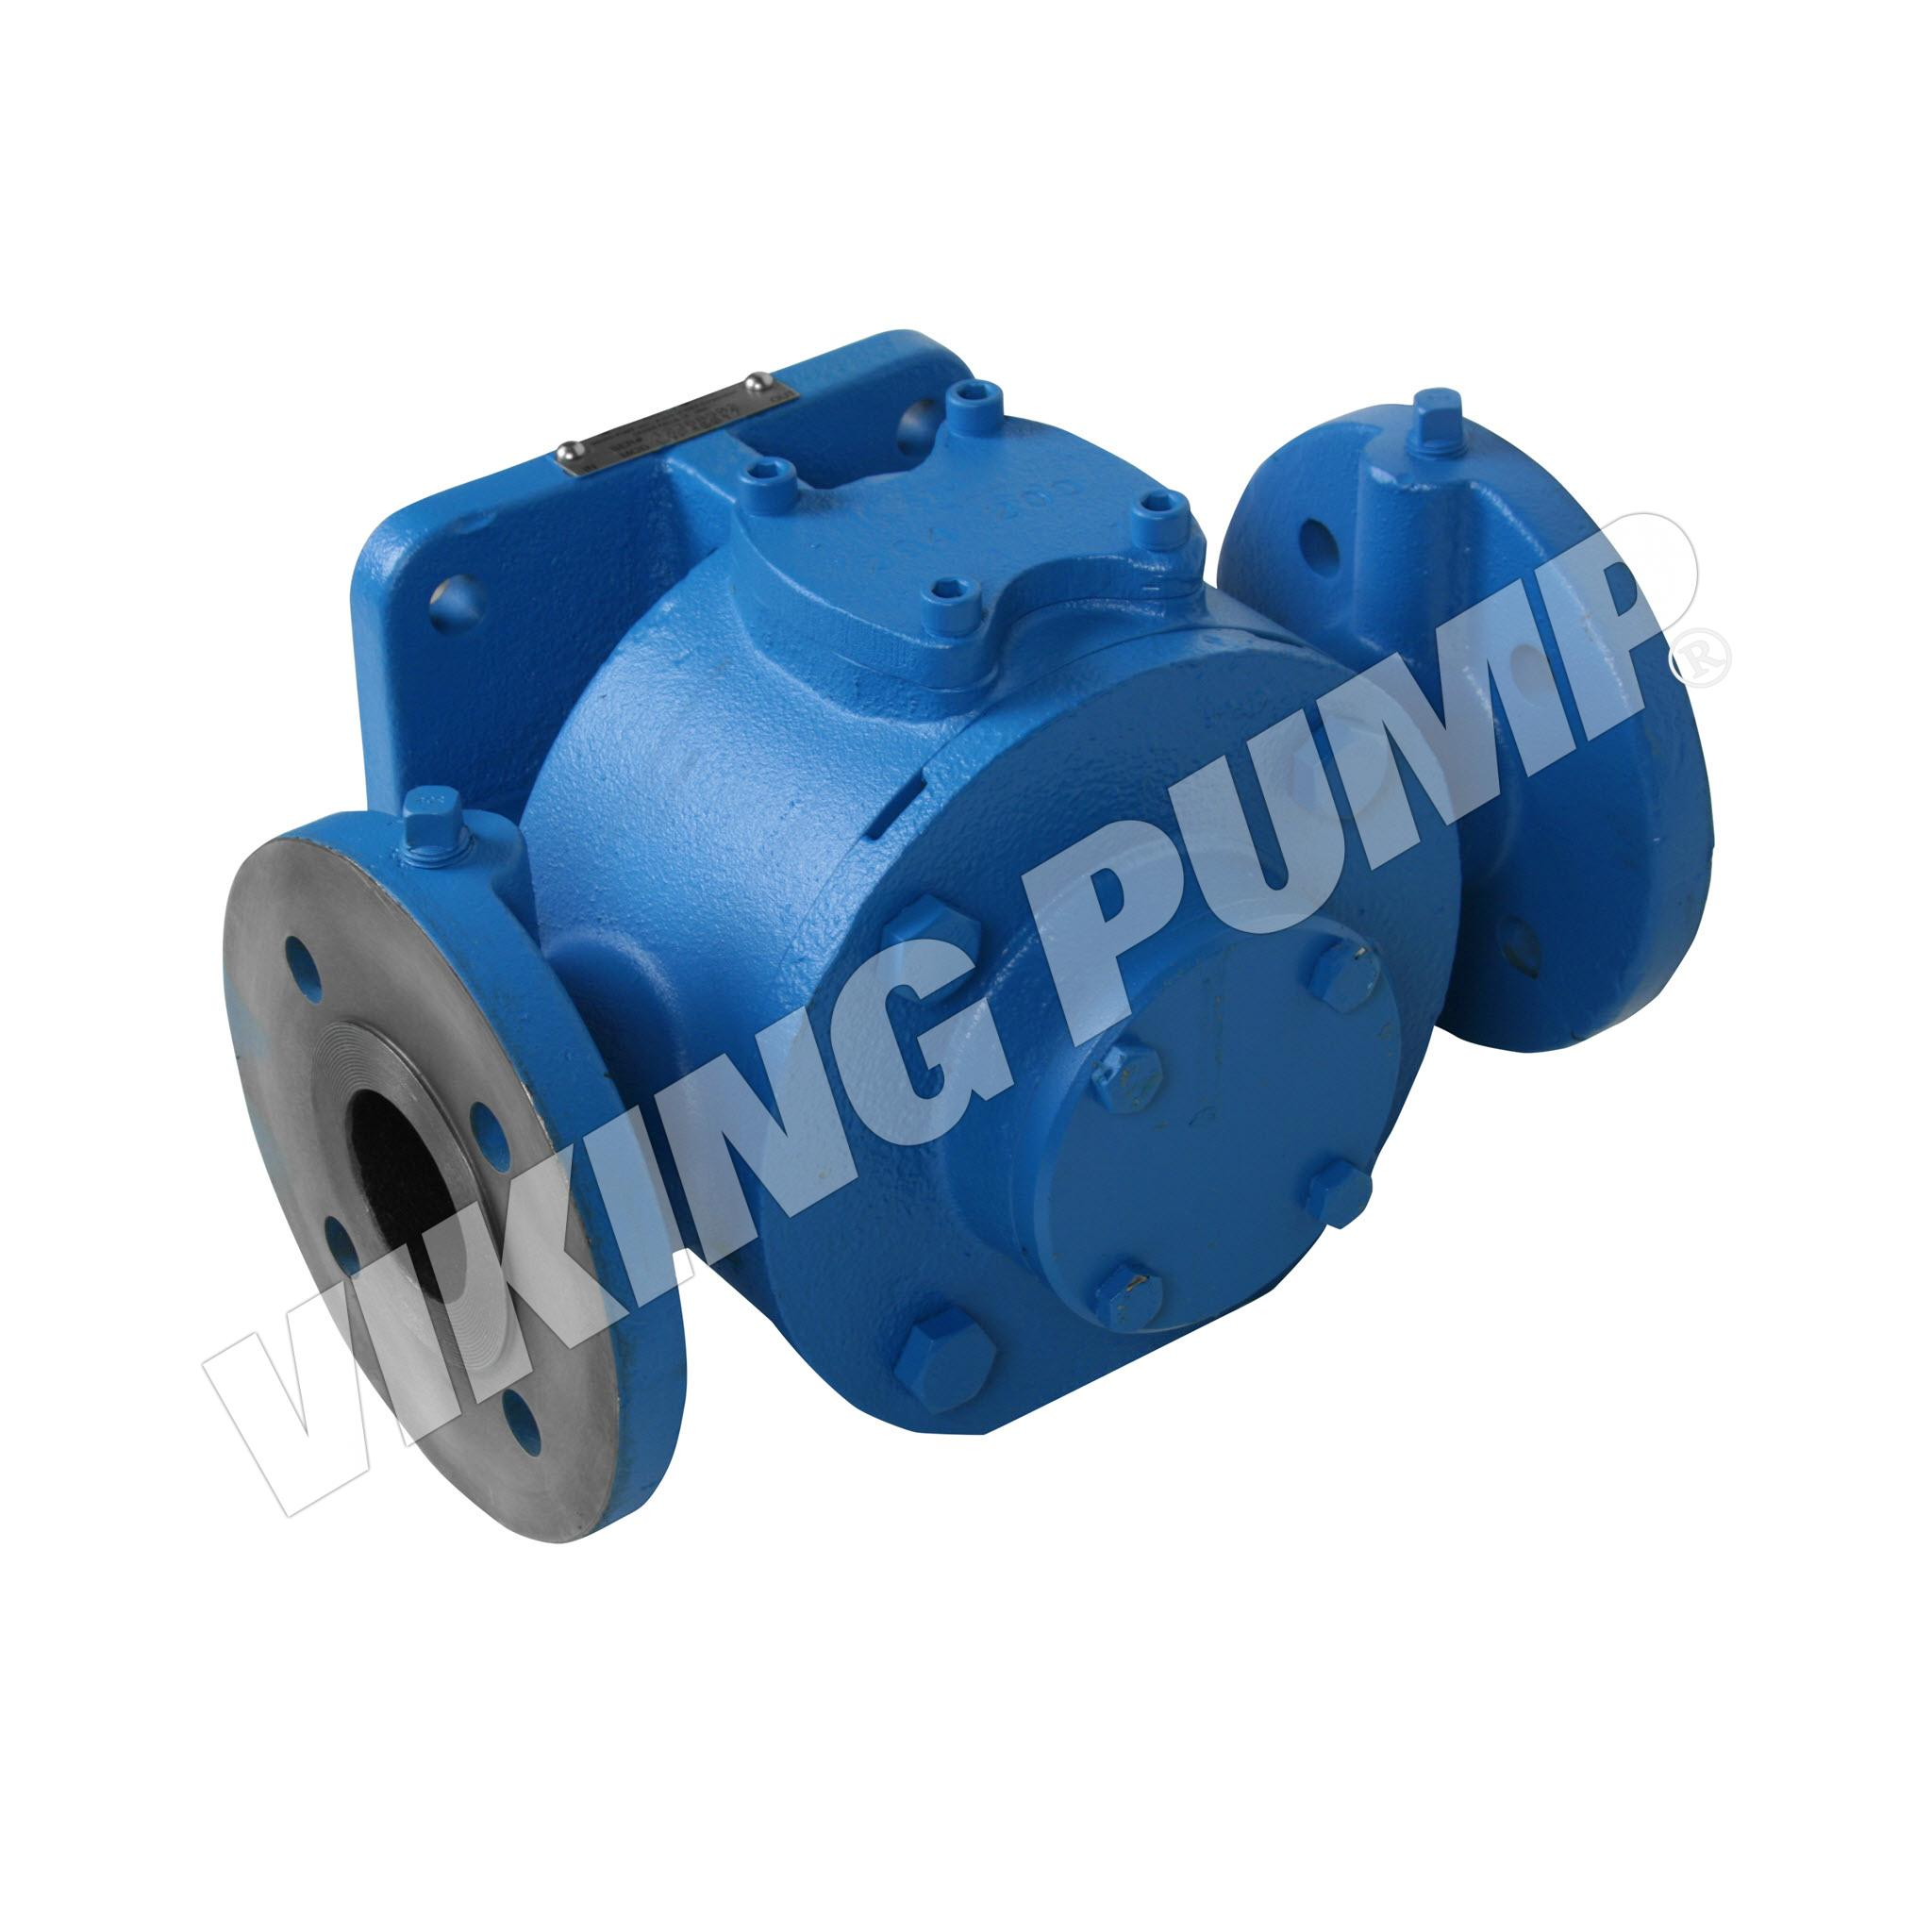 Model LVP40017, Flange Mounted, Mechanical Seal, less Relief Valve Pump